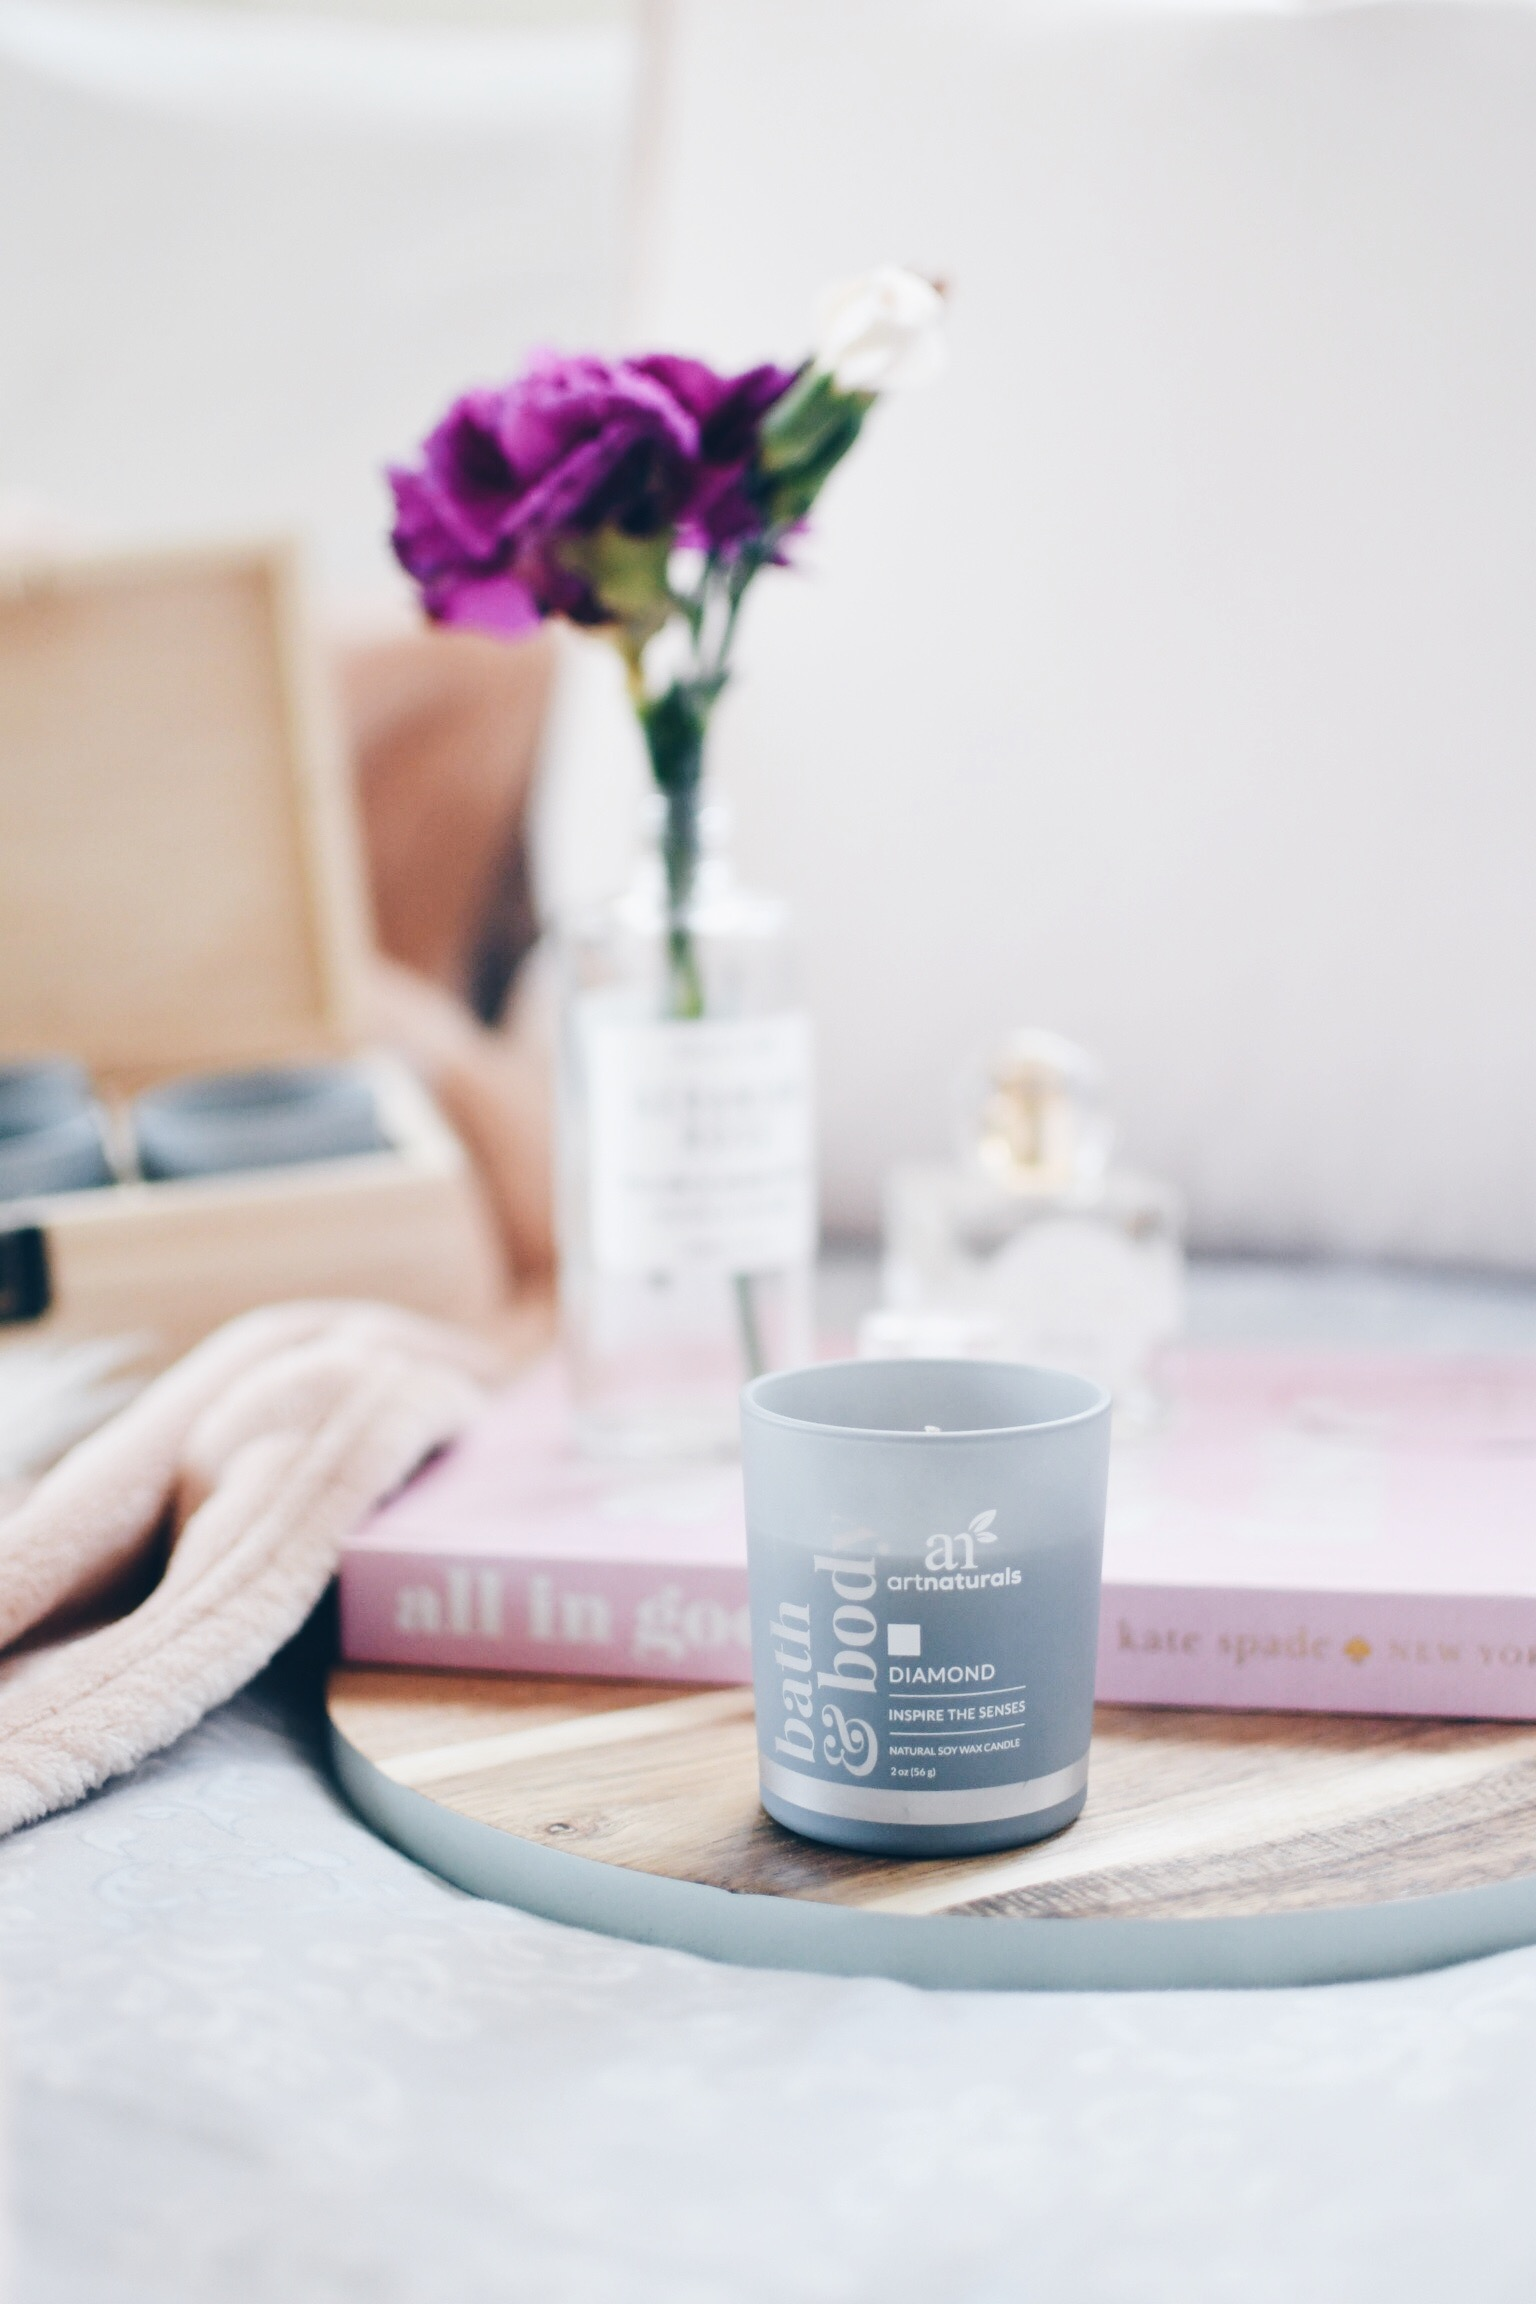 e-Stress During The Holidays // Natural Soy Wax Candle - Art Naturals